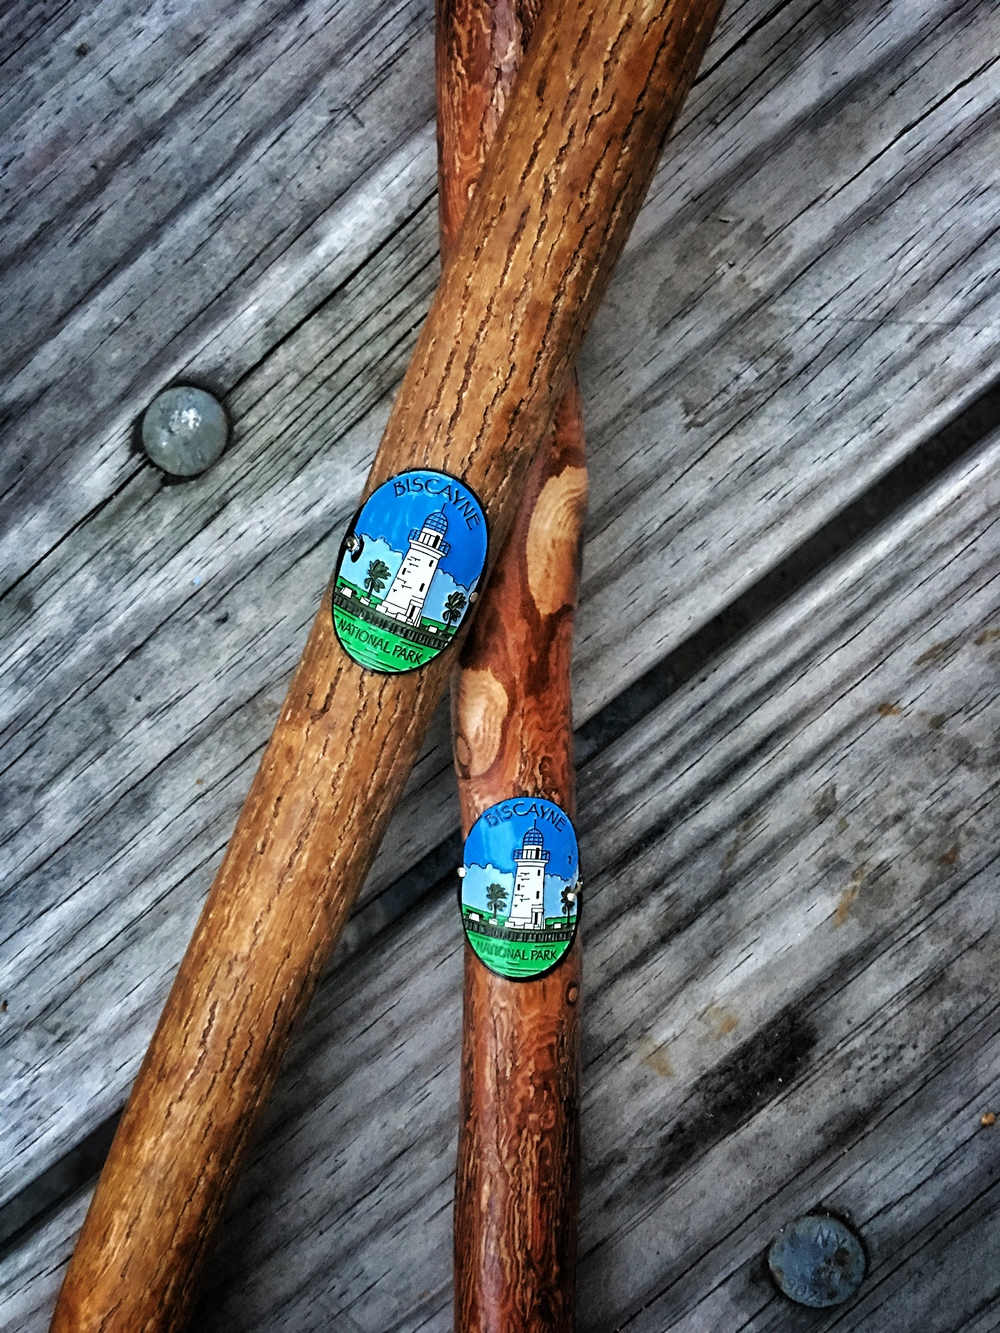 Biscayne National Park hiking stick medallions.